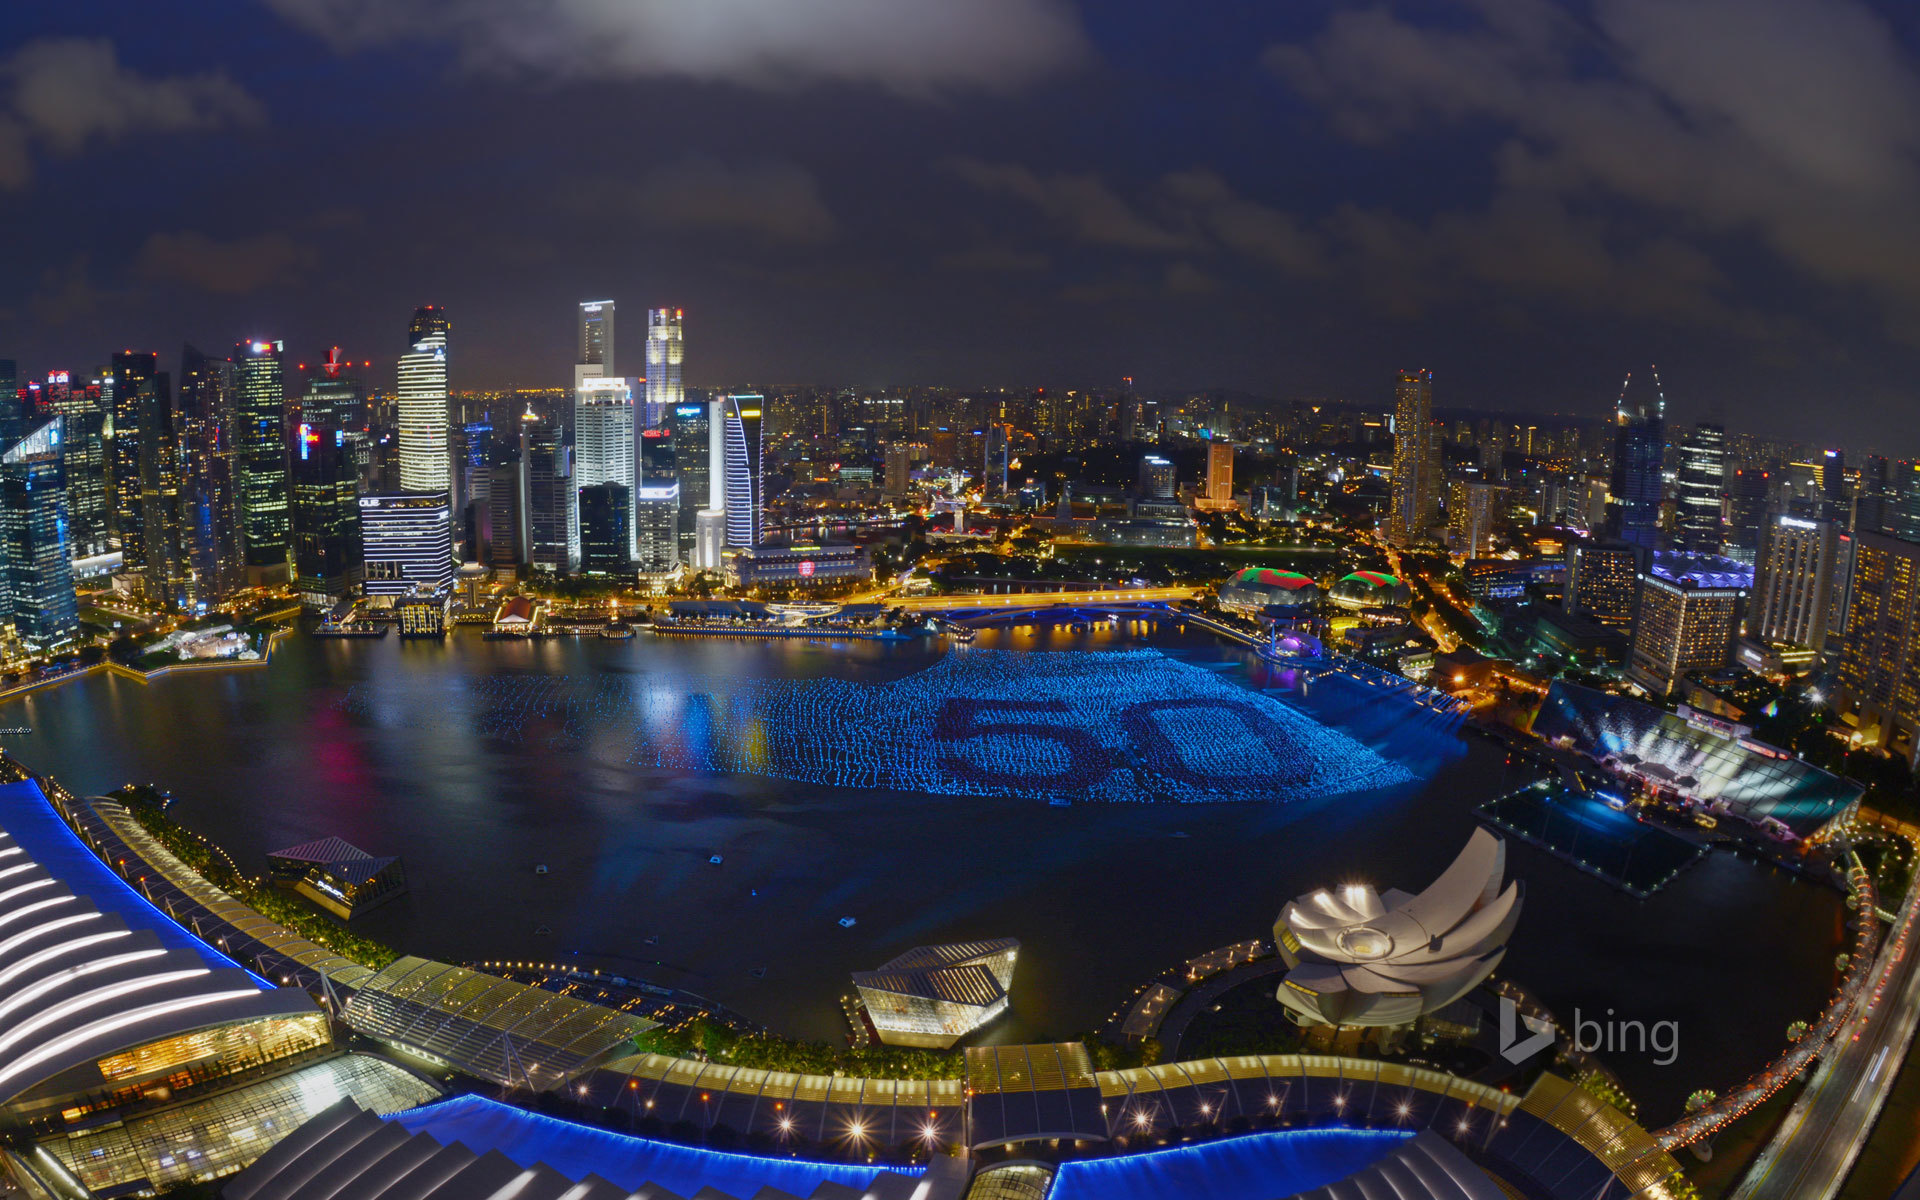 singapore wallpapers, photos and desktop backgrounds up to ...